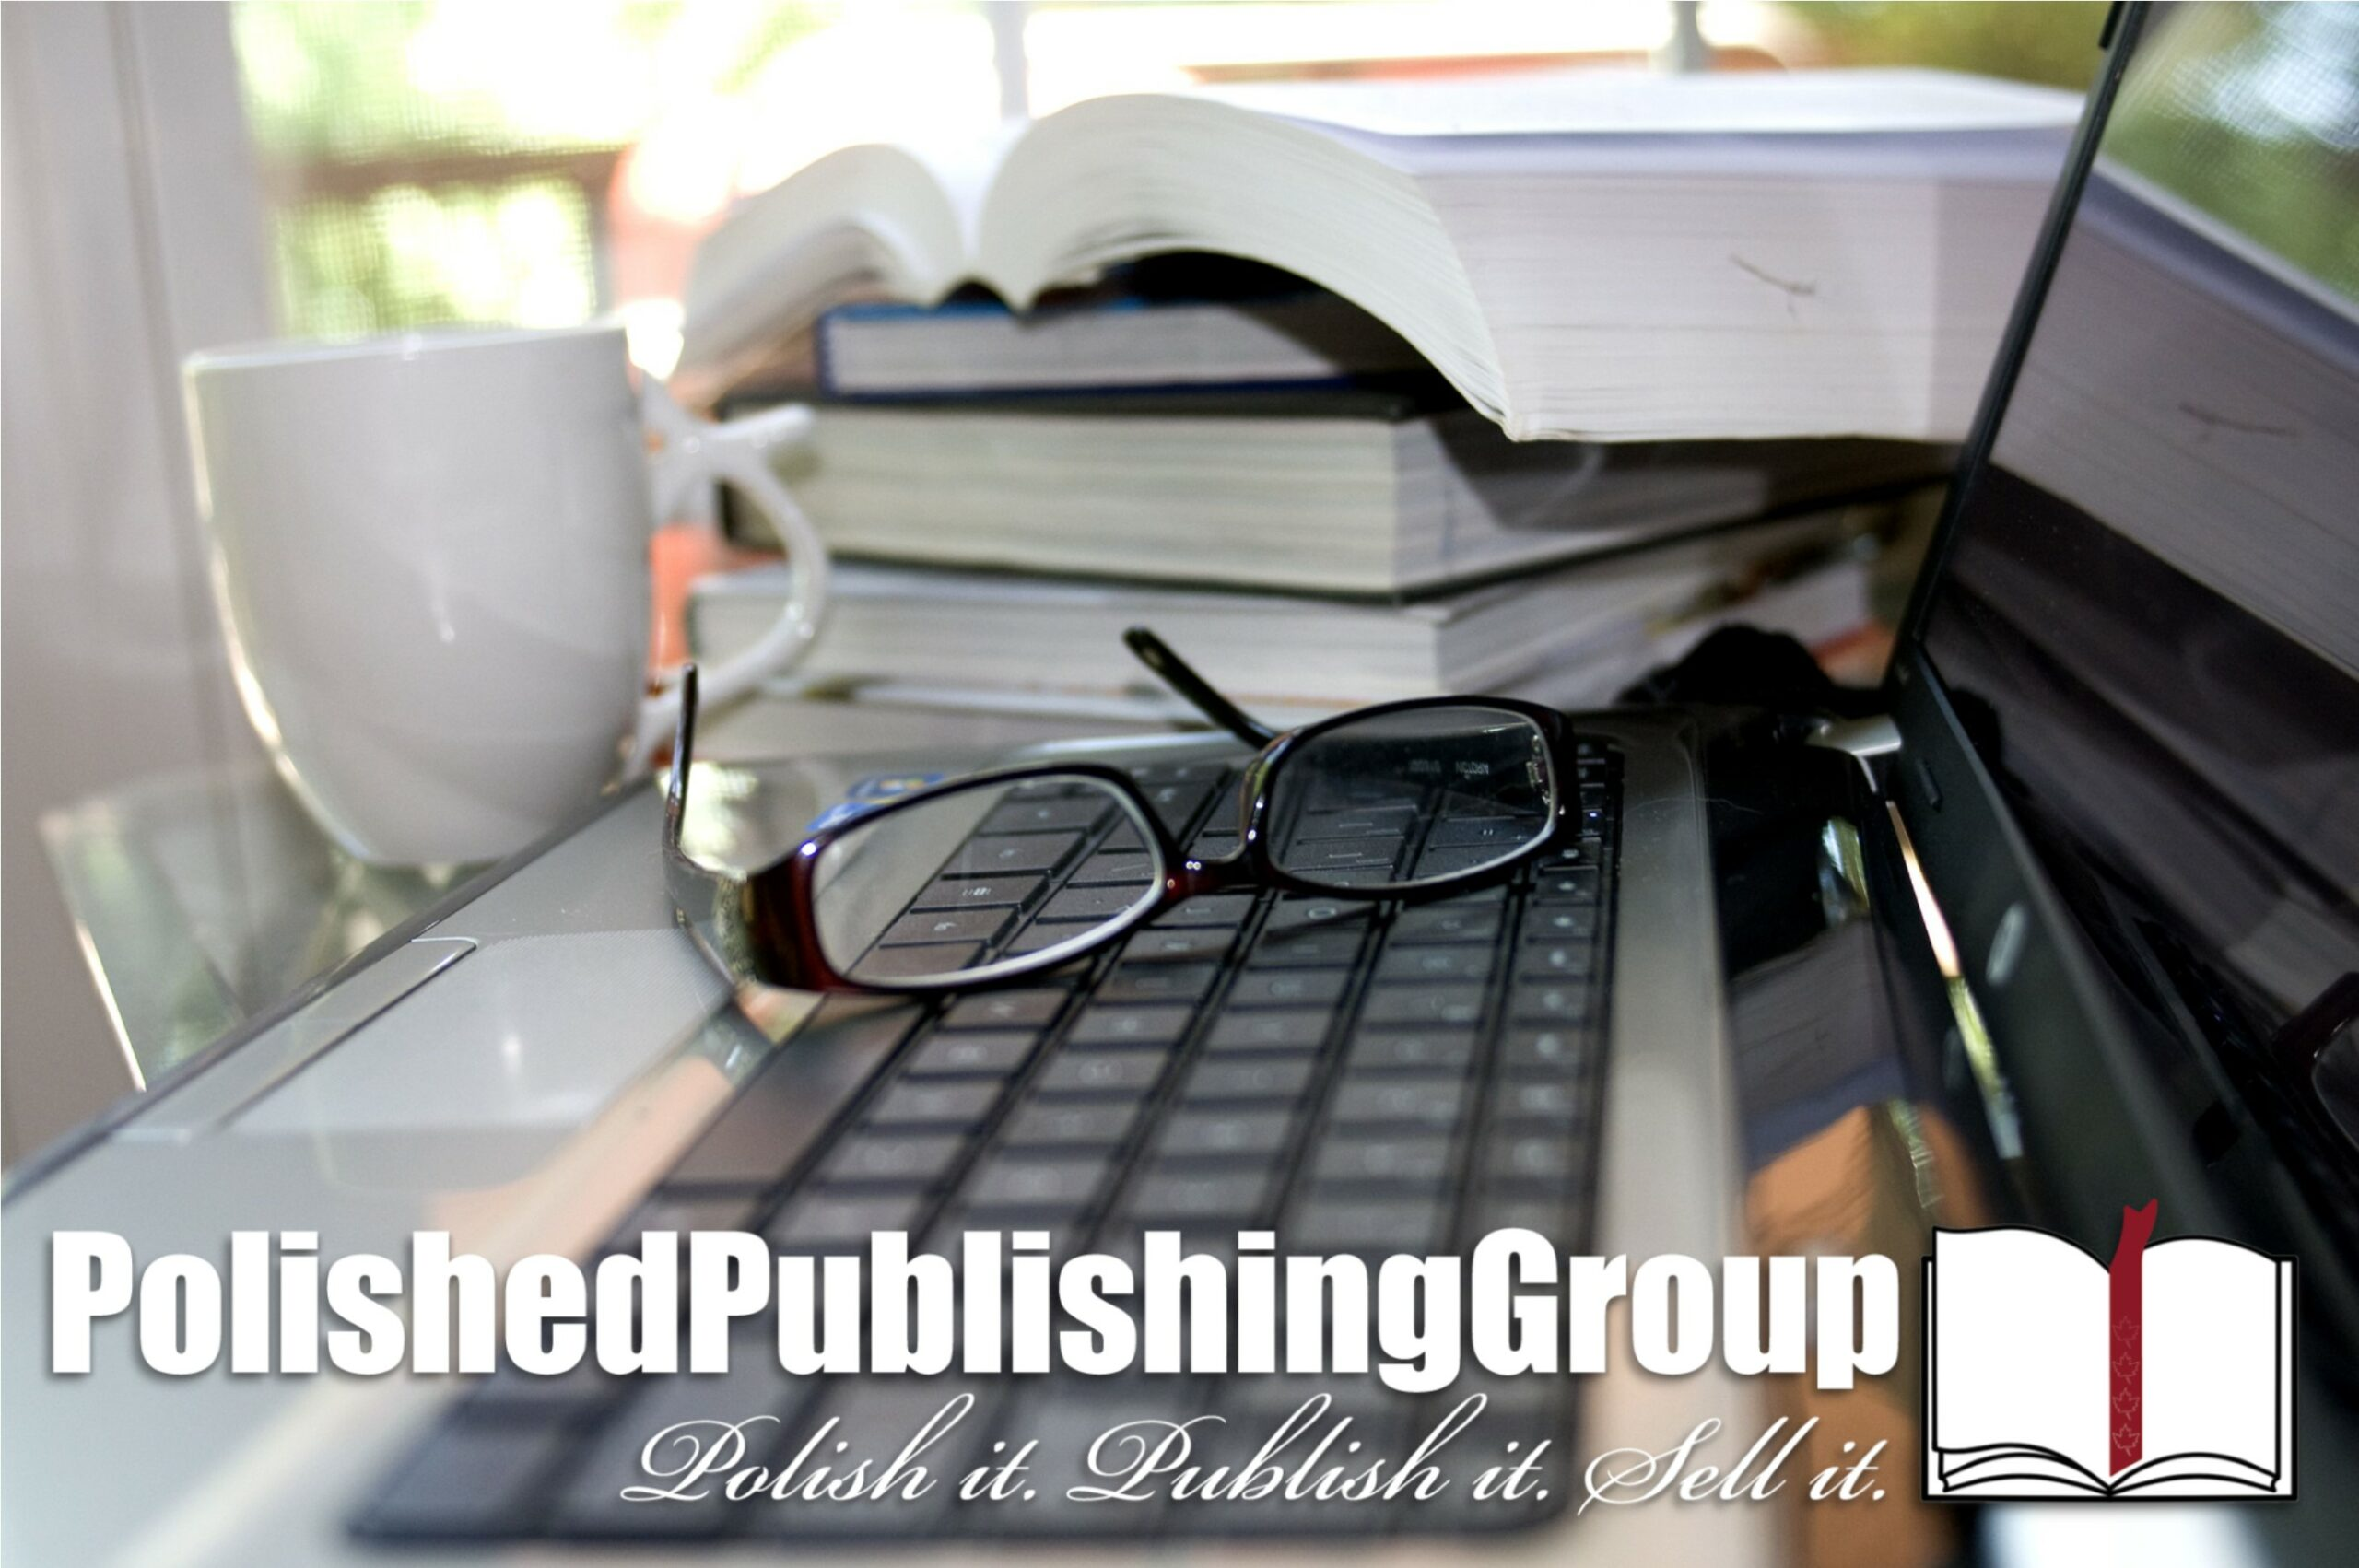 Polished Publishing Group and the PPG Publisher's Blog